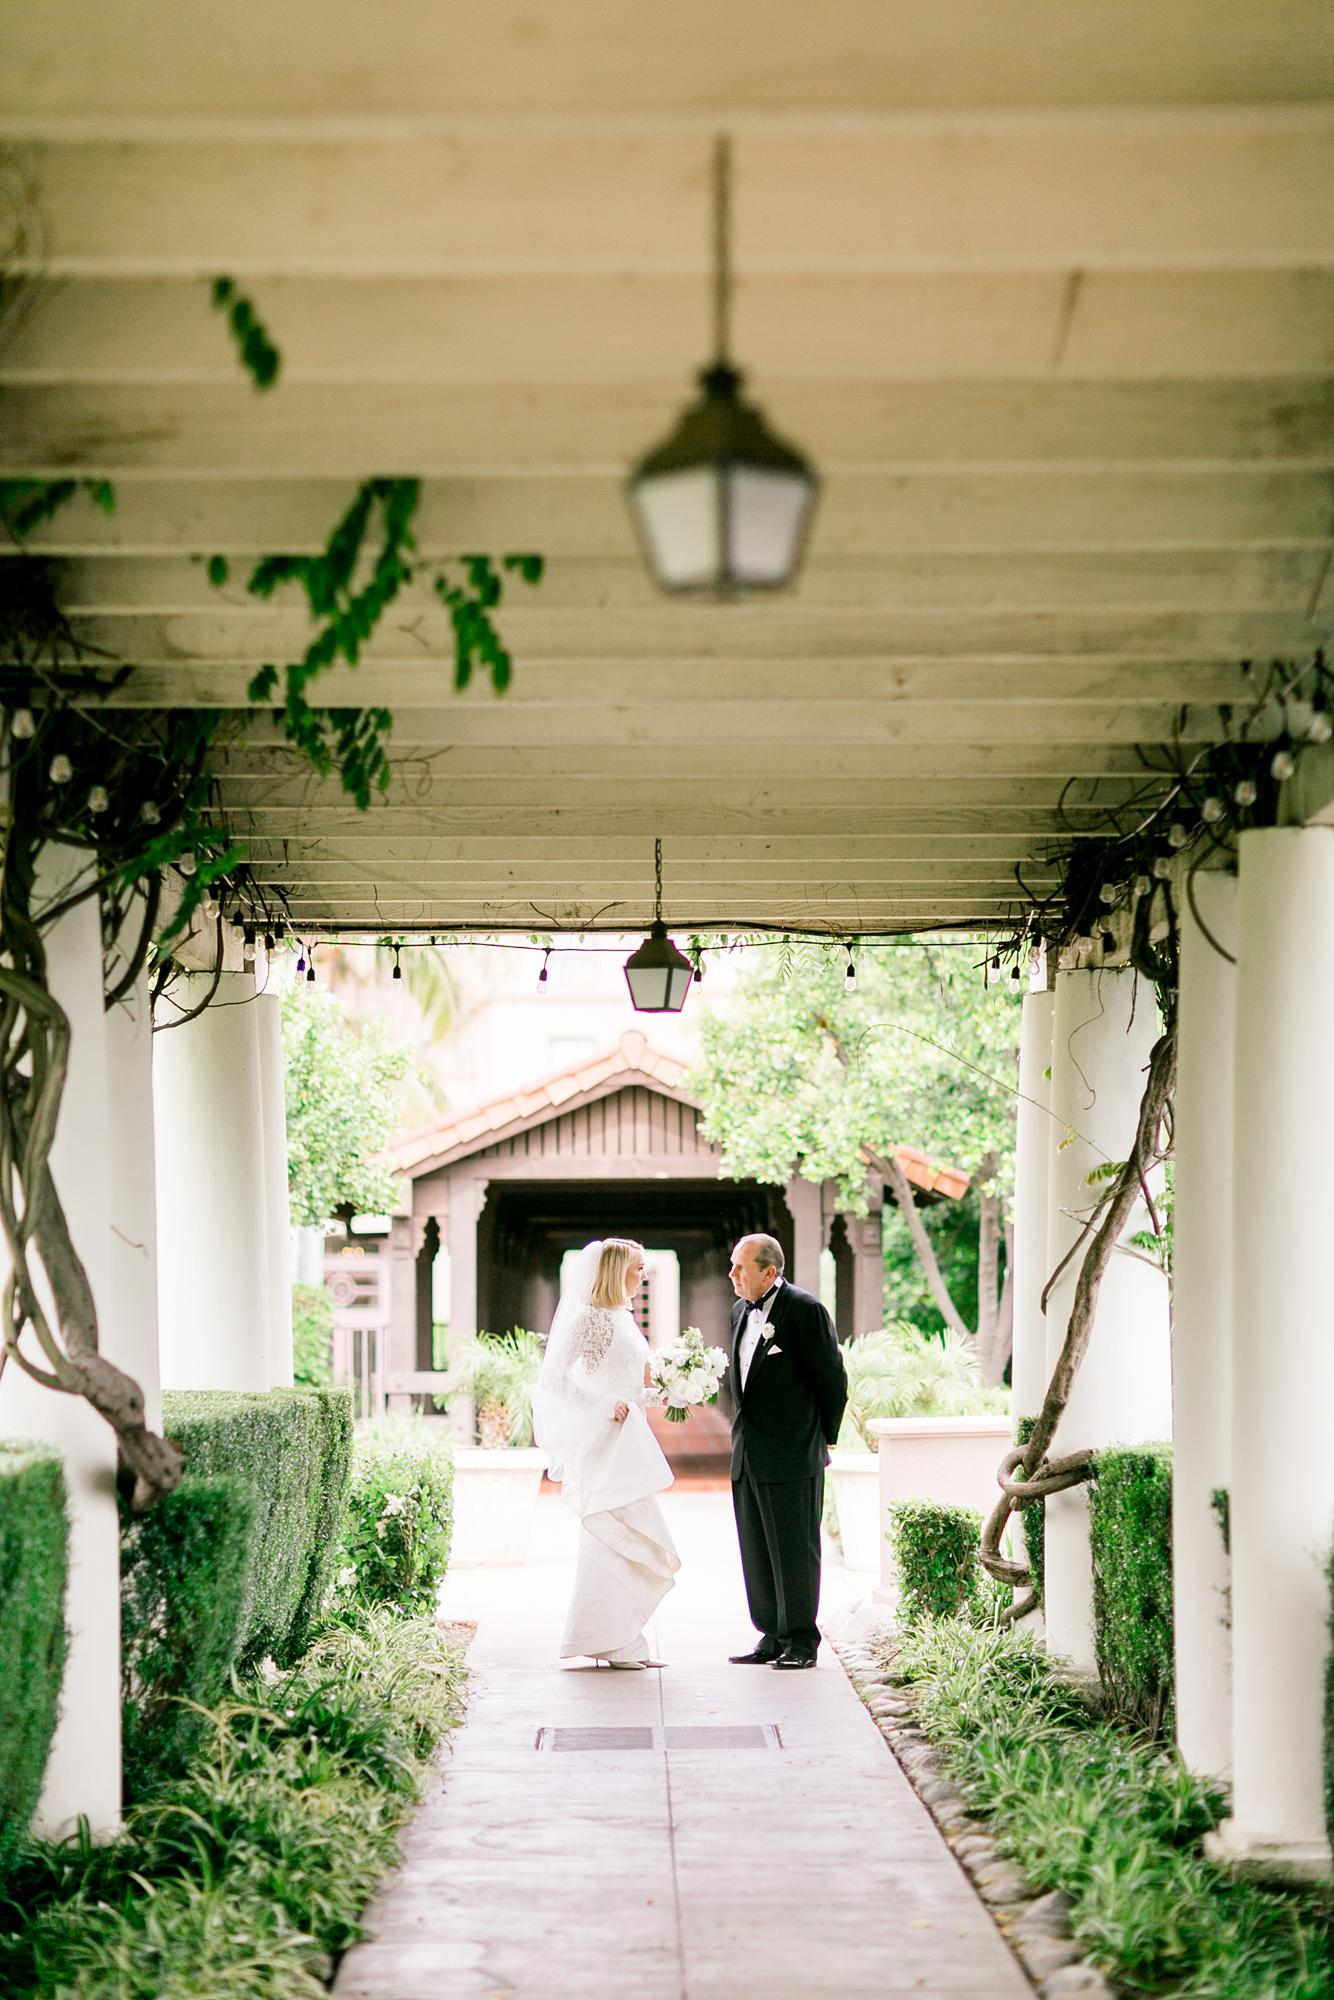 Valley Hunt Club Pasadena Wedding | Miki & Sonja Photography | mikiandsonja.com